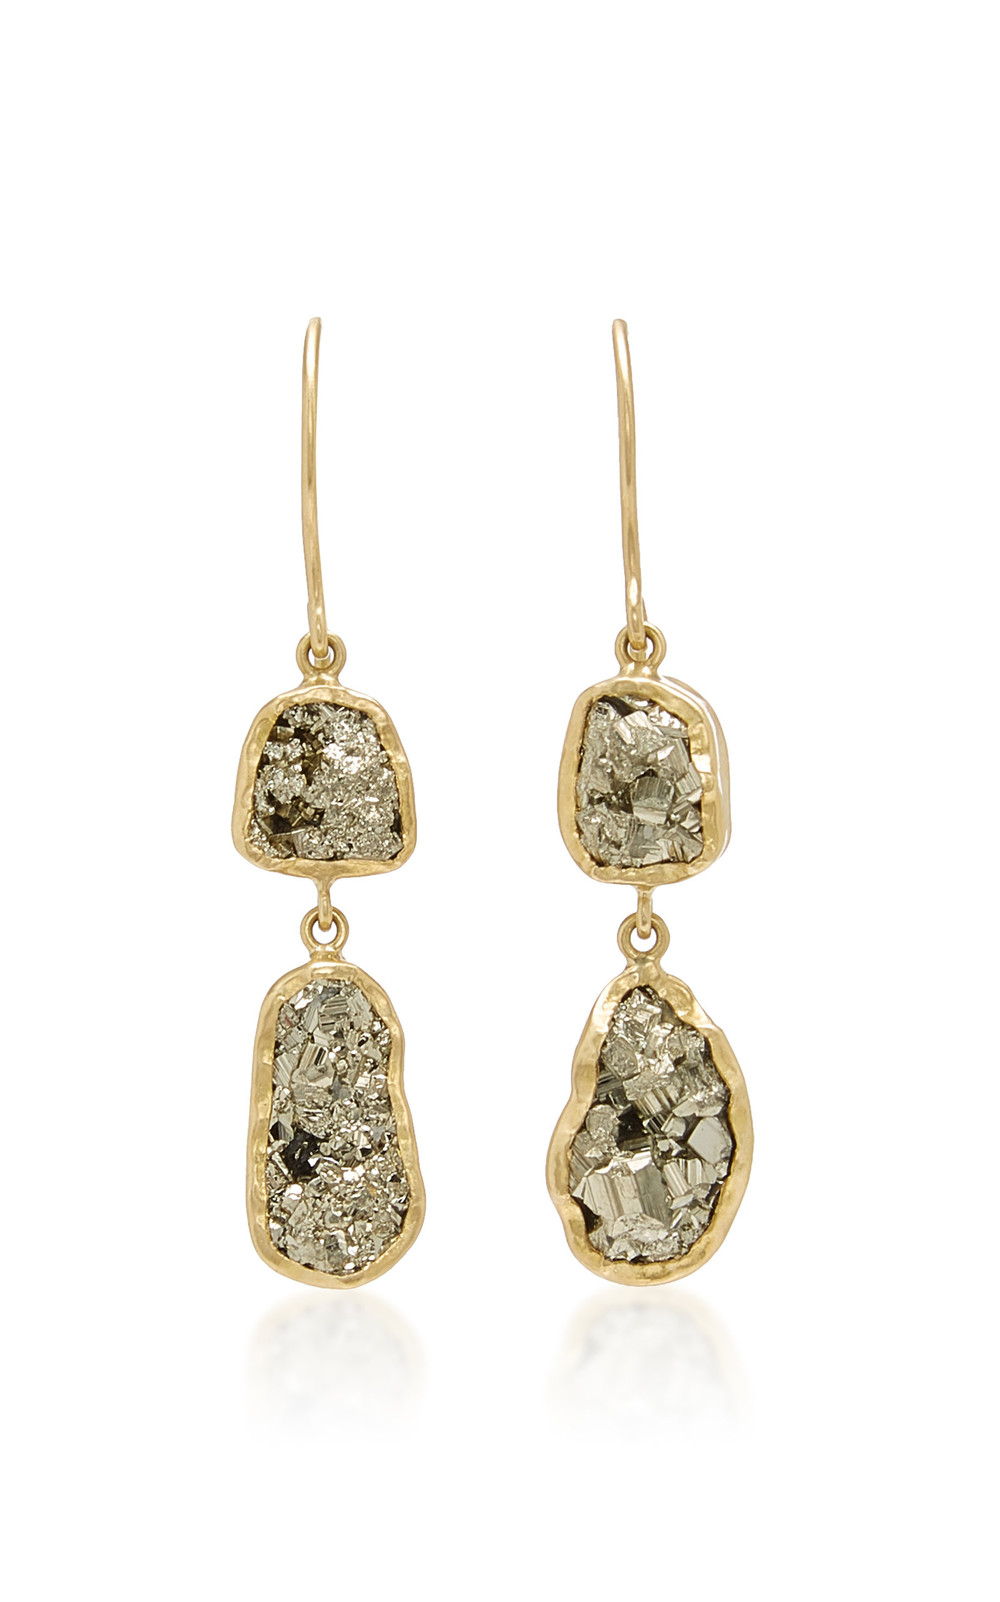 Pippa Small Dazzle Small Double Drop Pyrite Earrings in gold